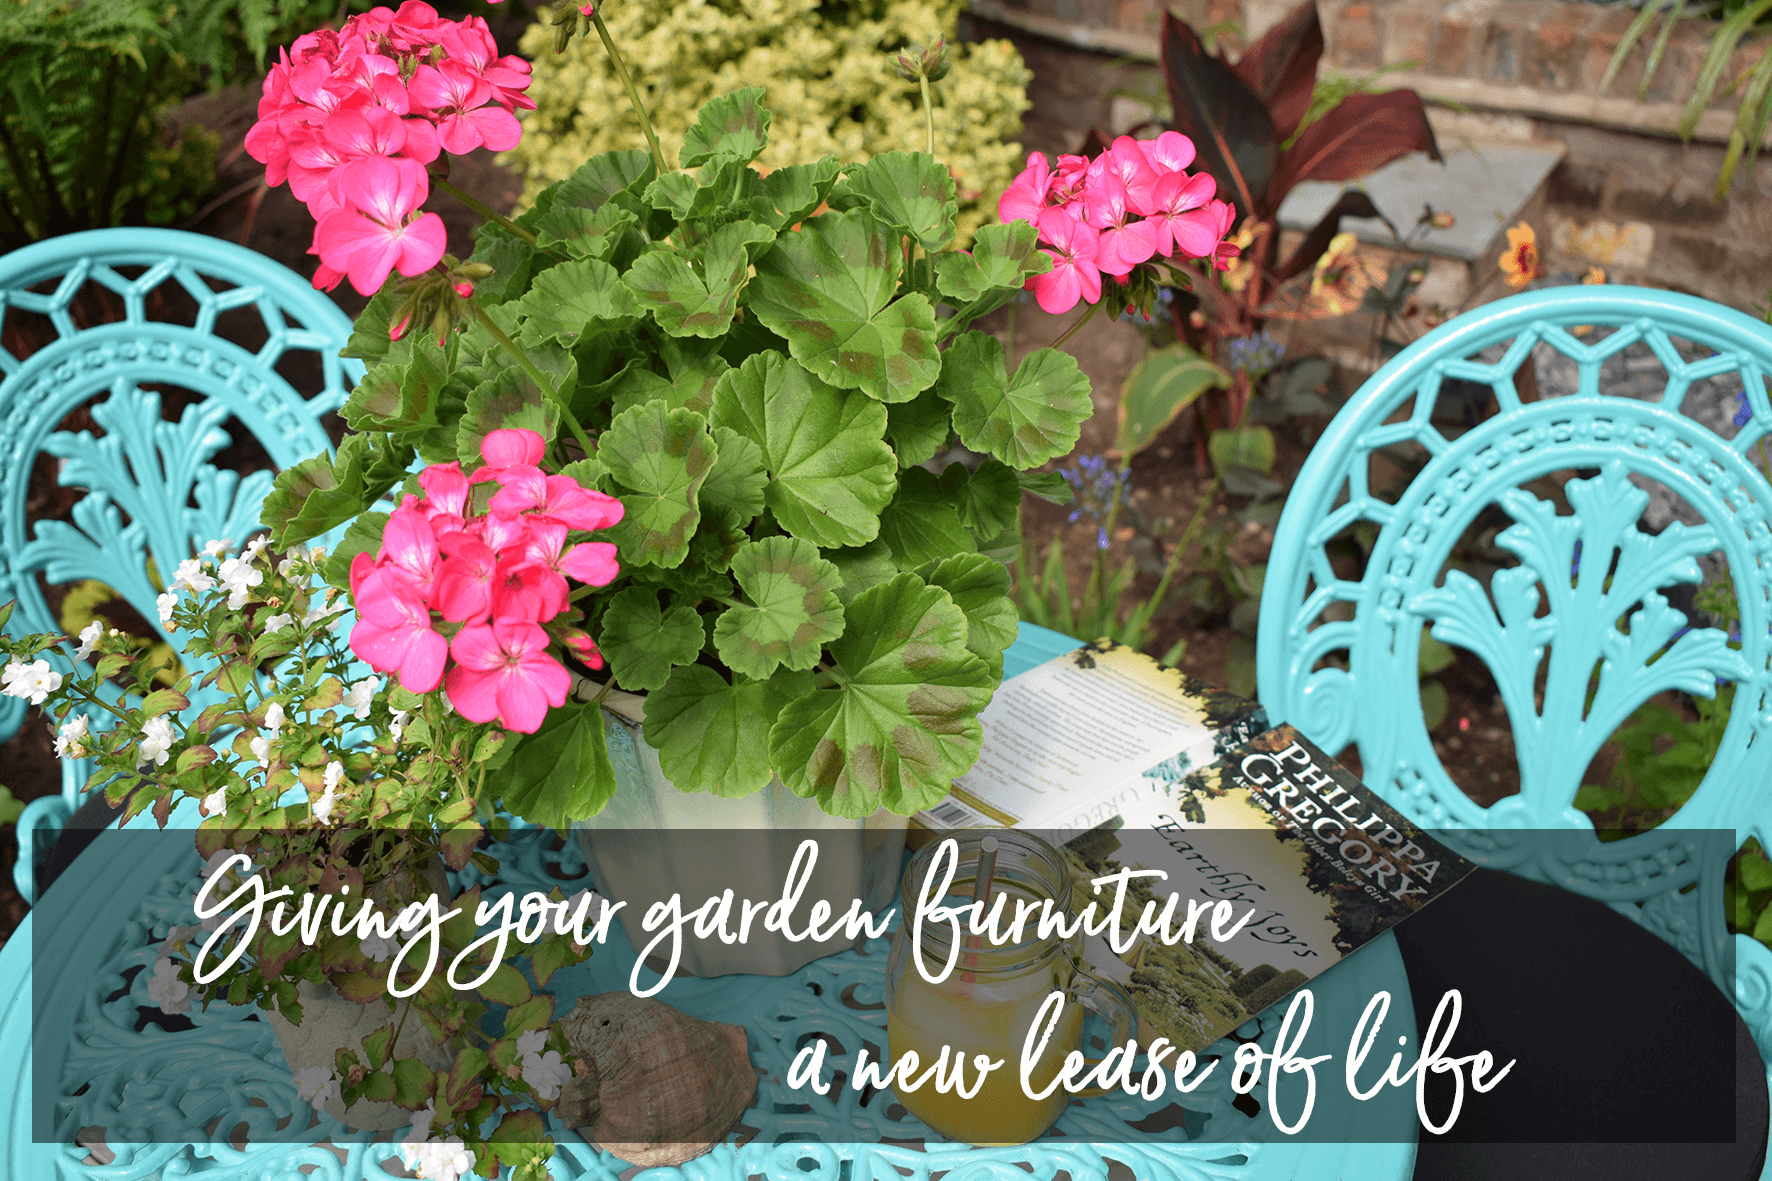 Giving your garden furniture a new lease of life